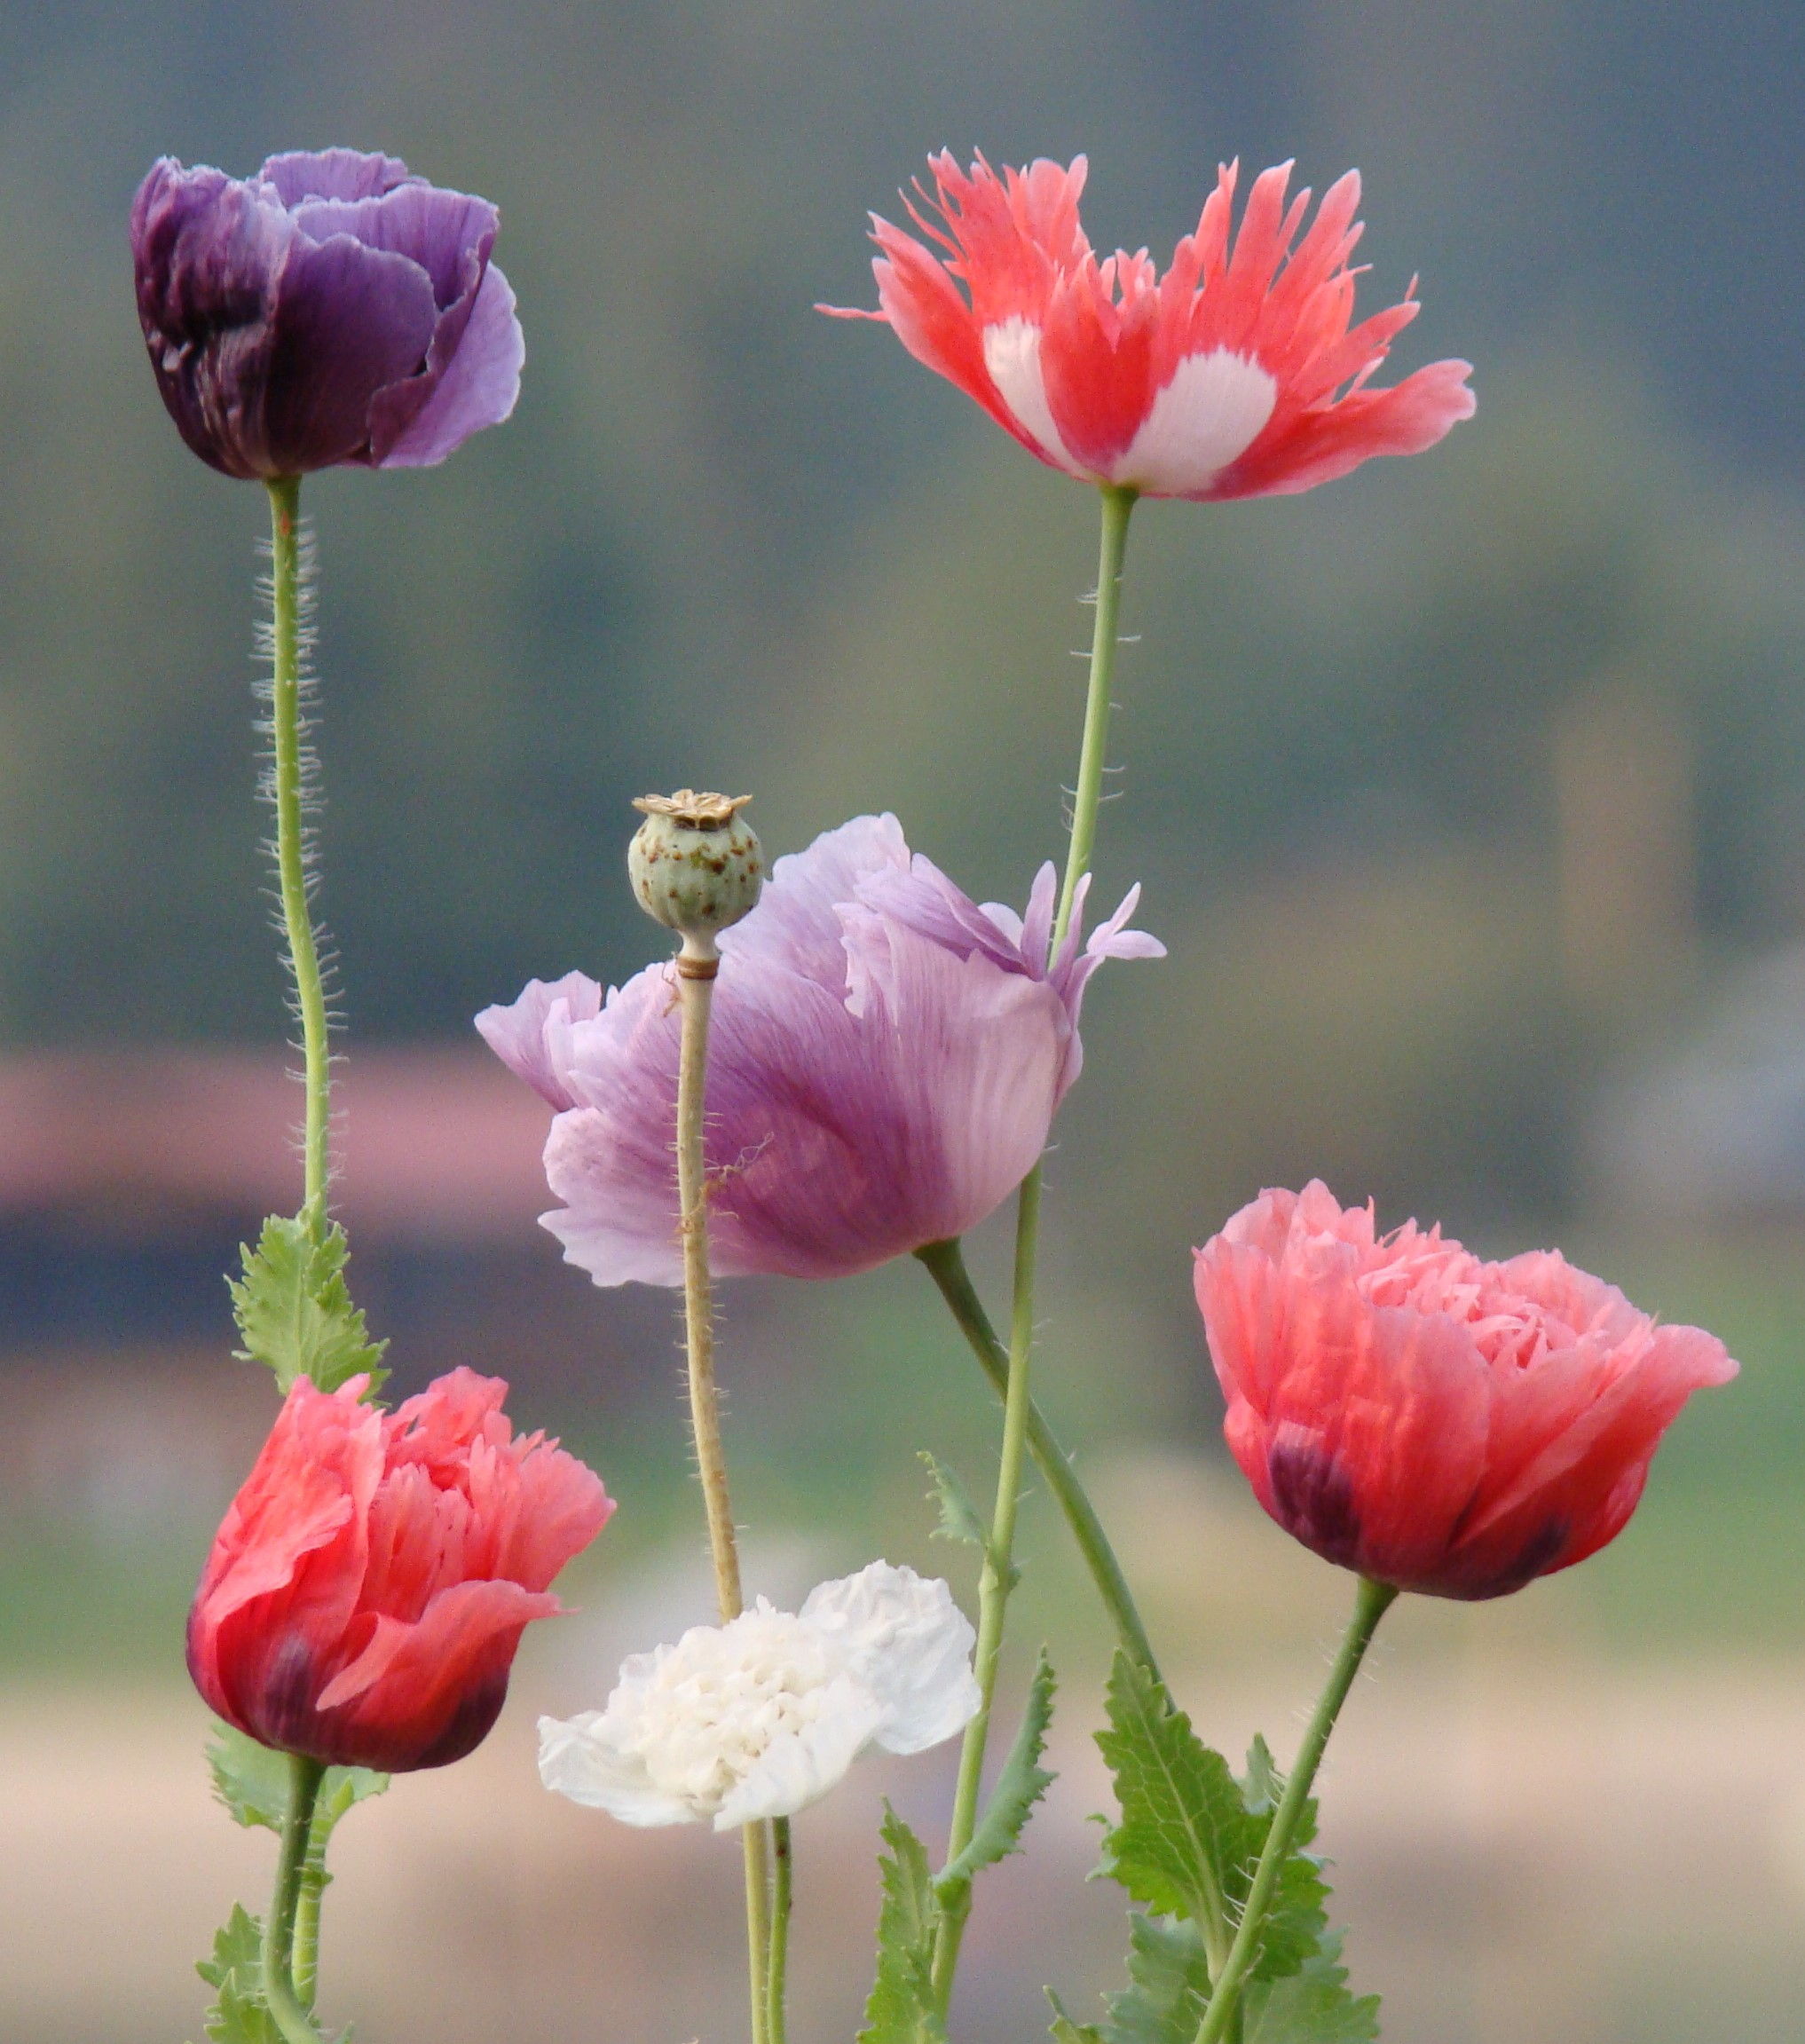 For The Love of Poppies #3 – Growing Poppies in Pots – The